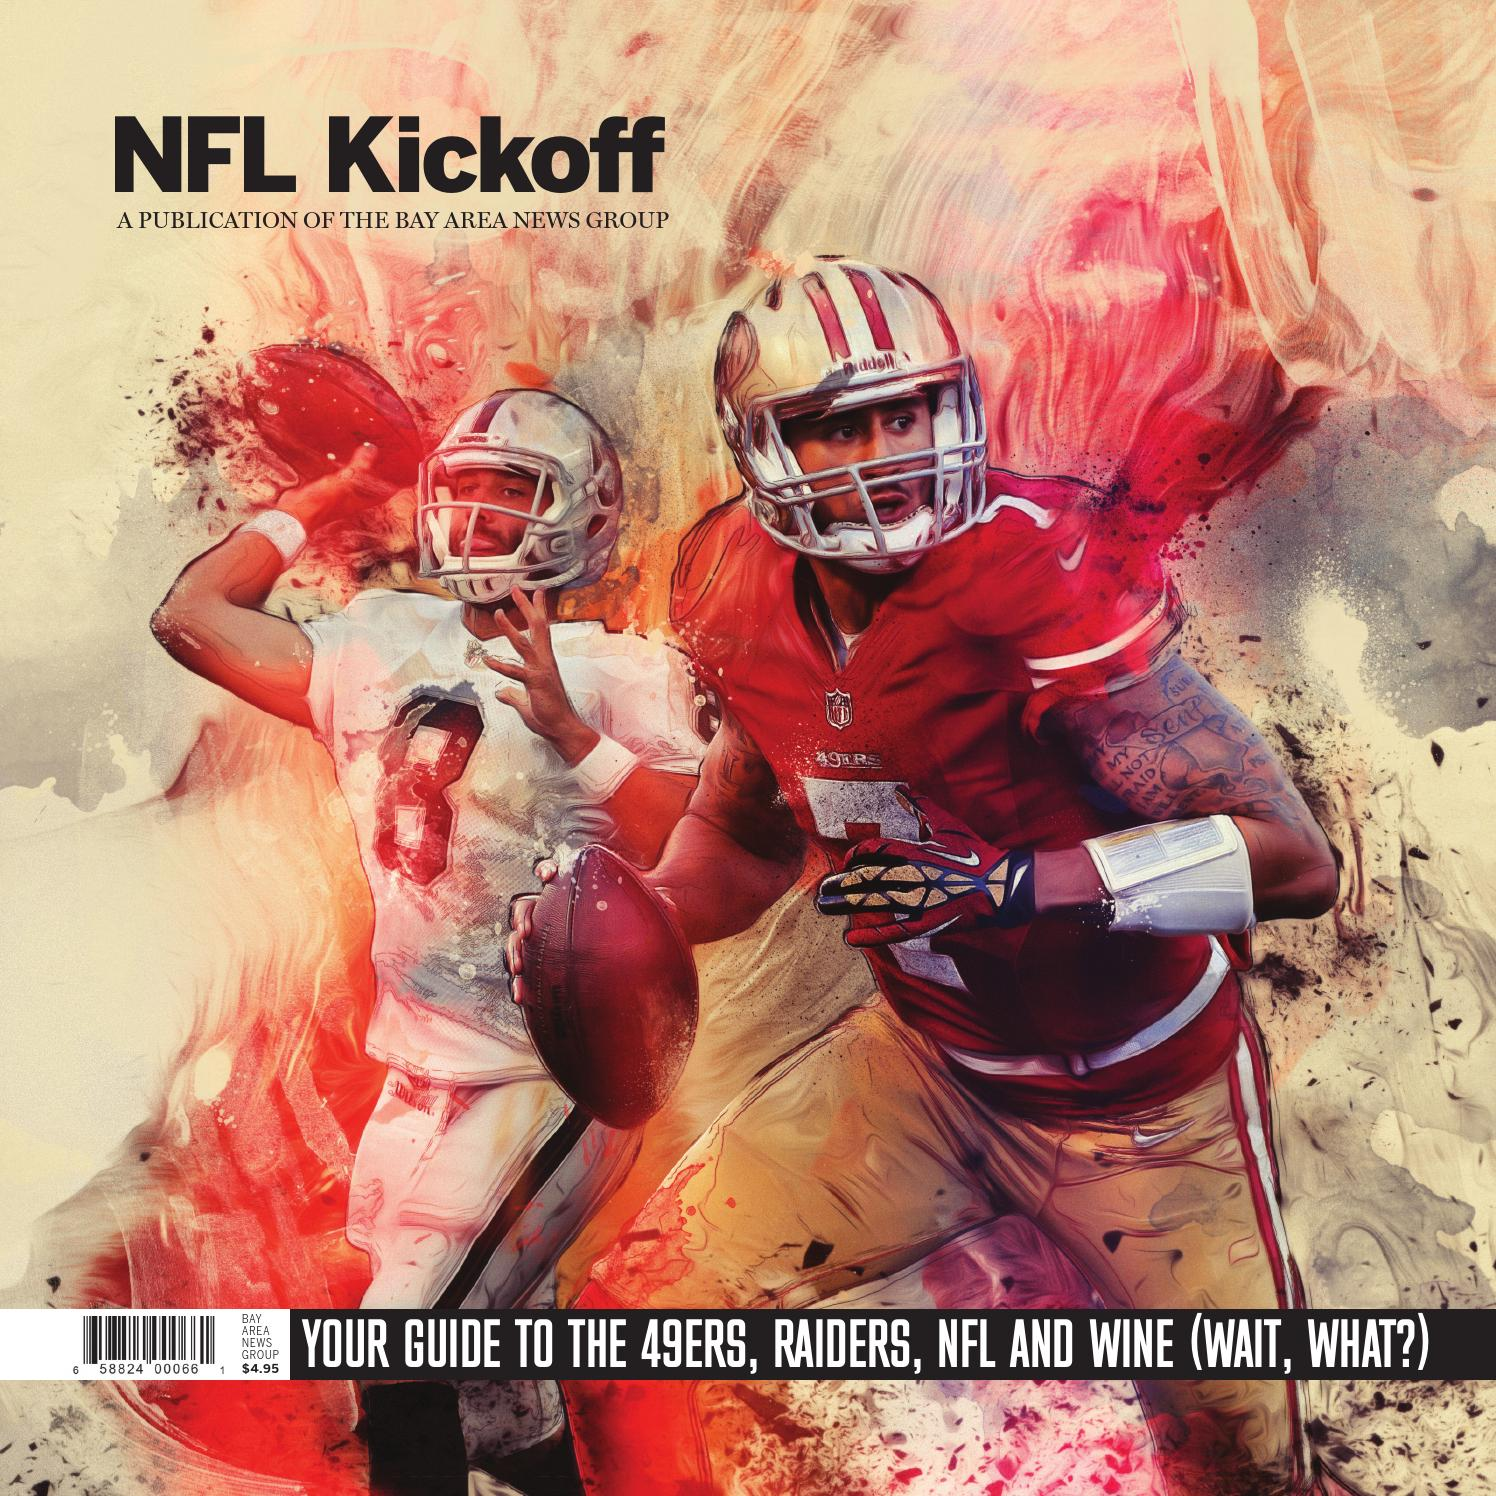 f107b1017 NFL Preview 2014 by Tim Ball - issuu